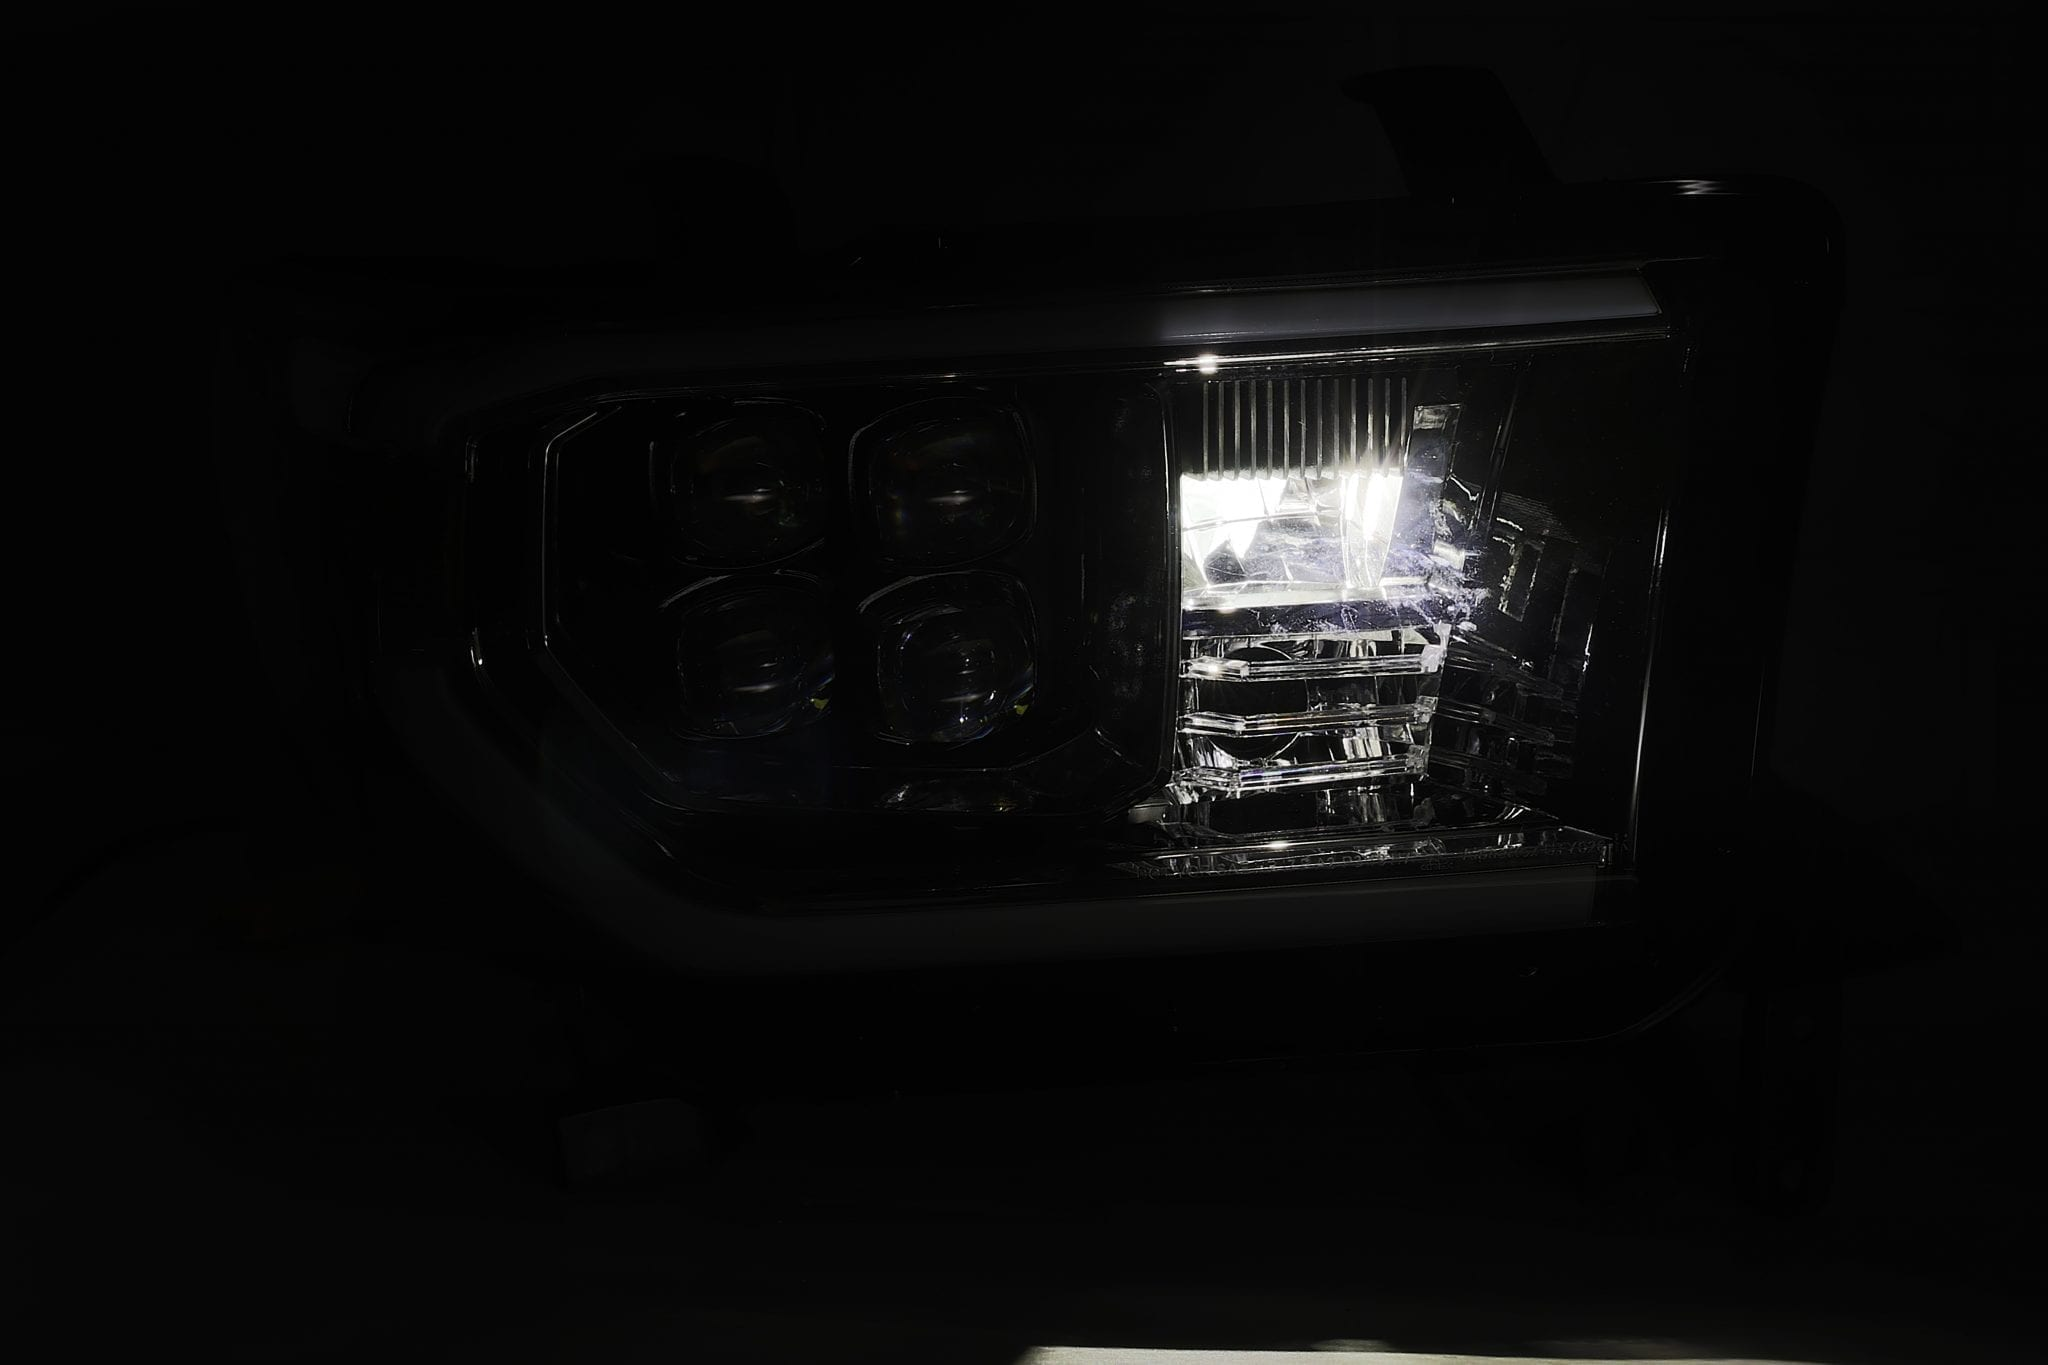 AlphaRex 07-13 Toyota Tundra/08-13 Toyota Sequoia NOVA-Series LED Projector Headlights Mid-Night Black (Without Level Adjuster)